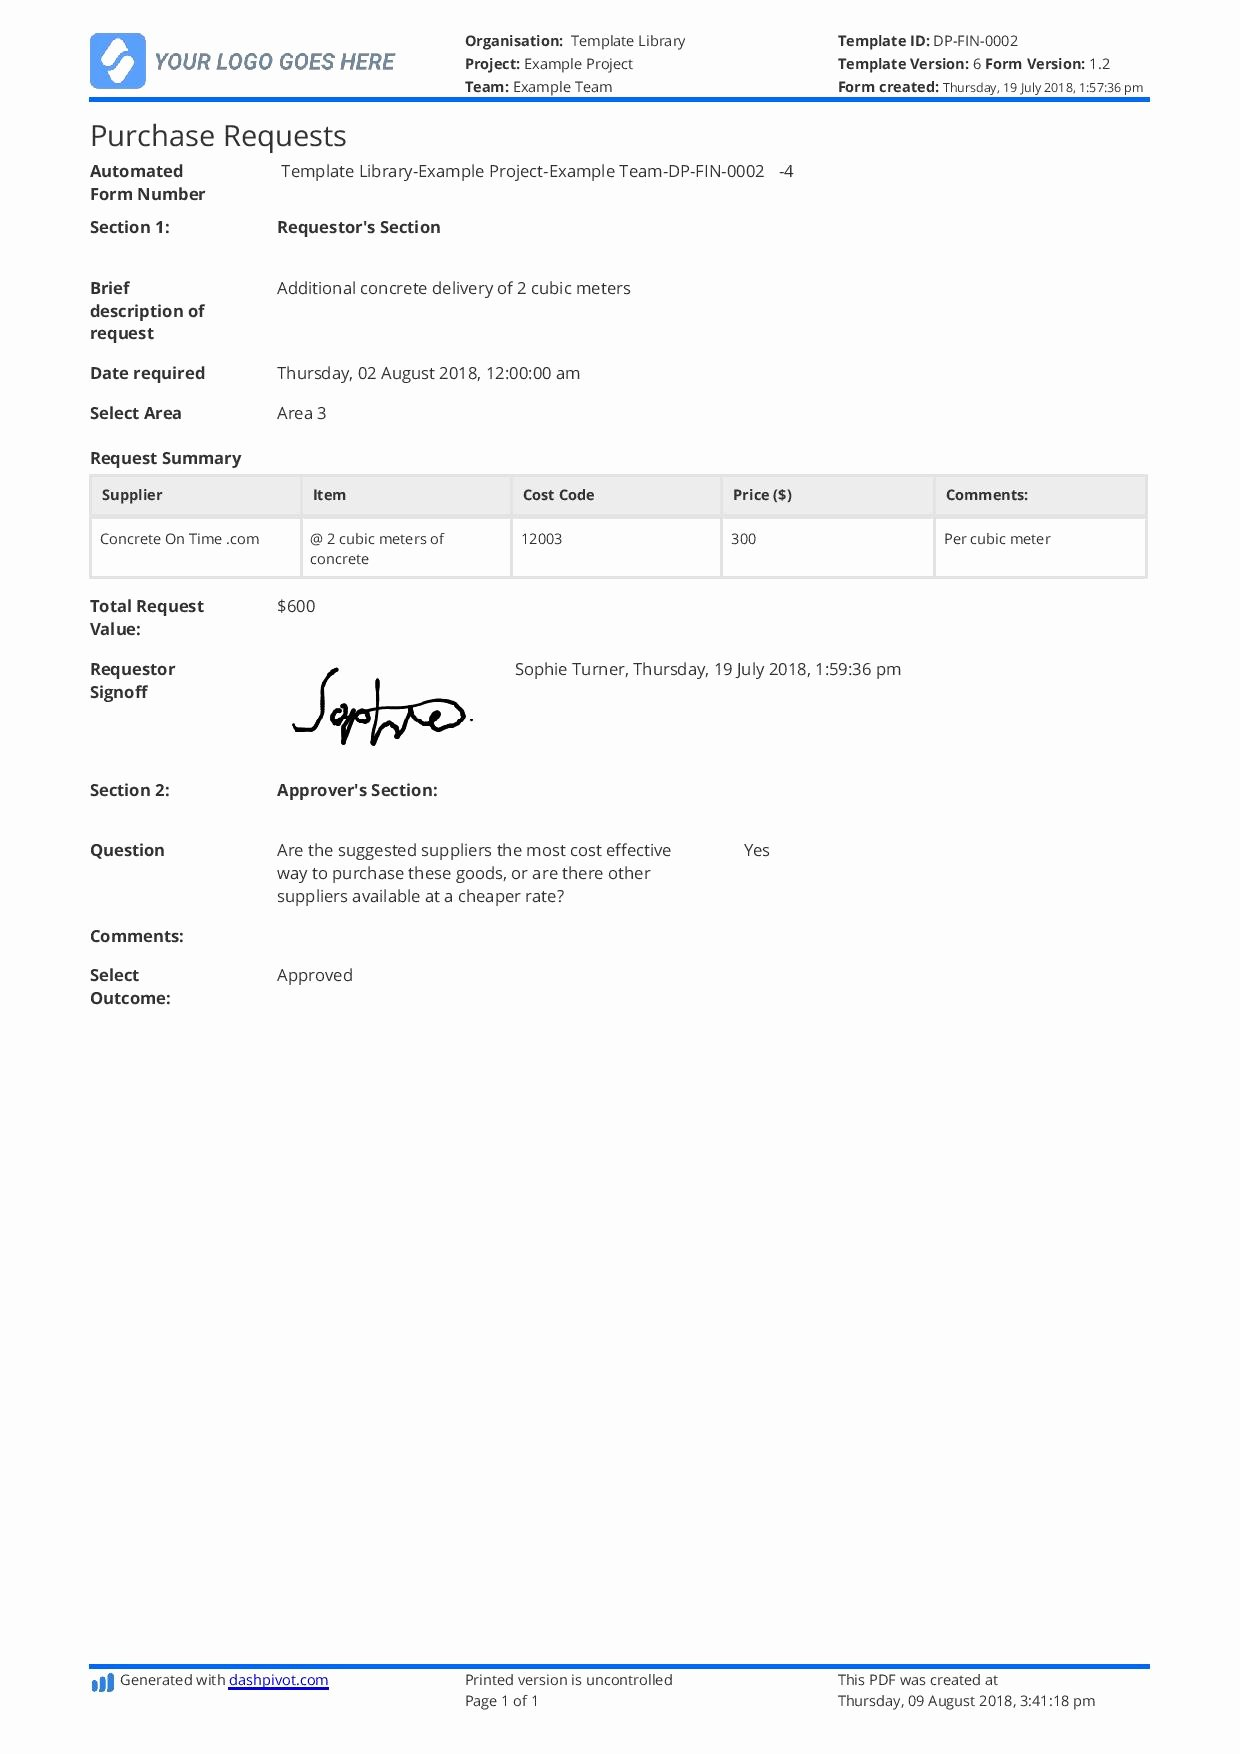 Purchase Requisition form Template New Purchase Request form Template Better Than Word Doc Pdf